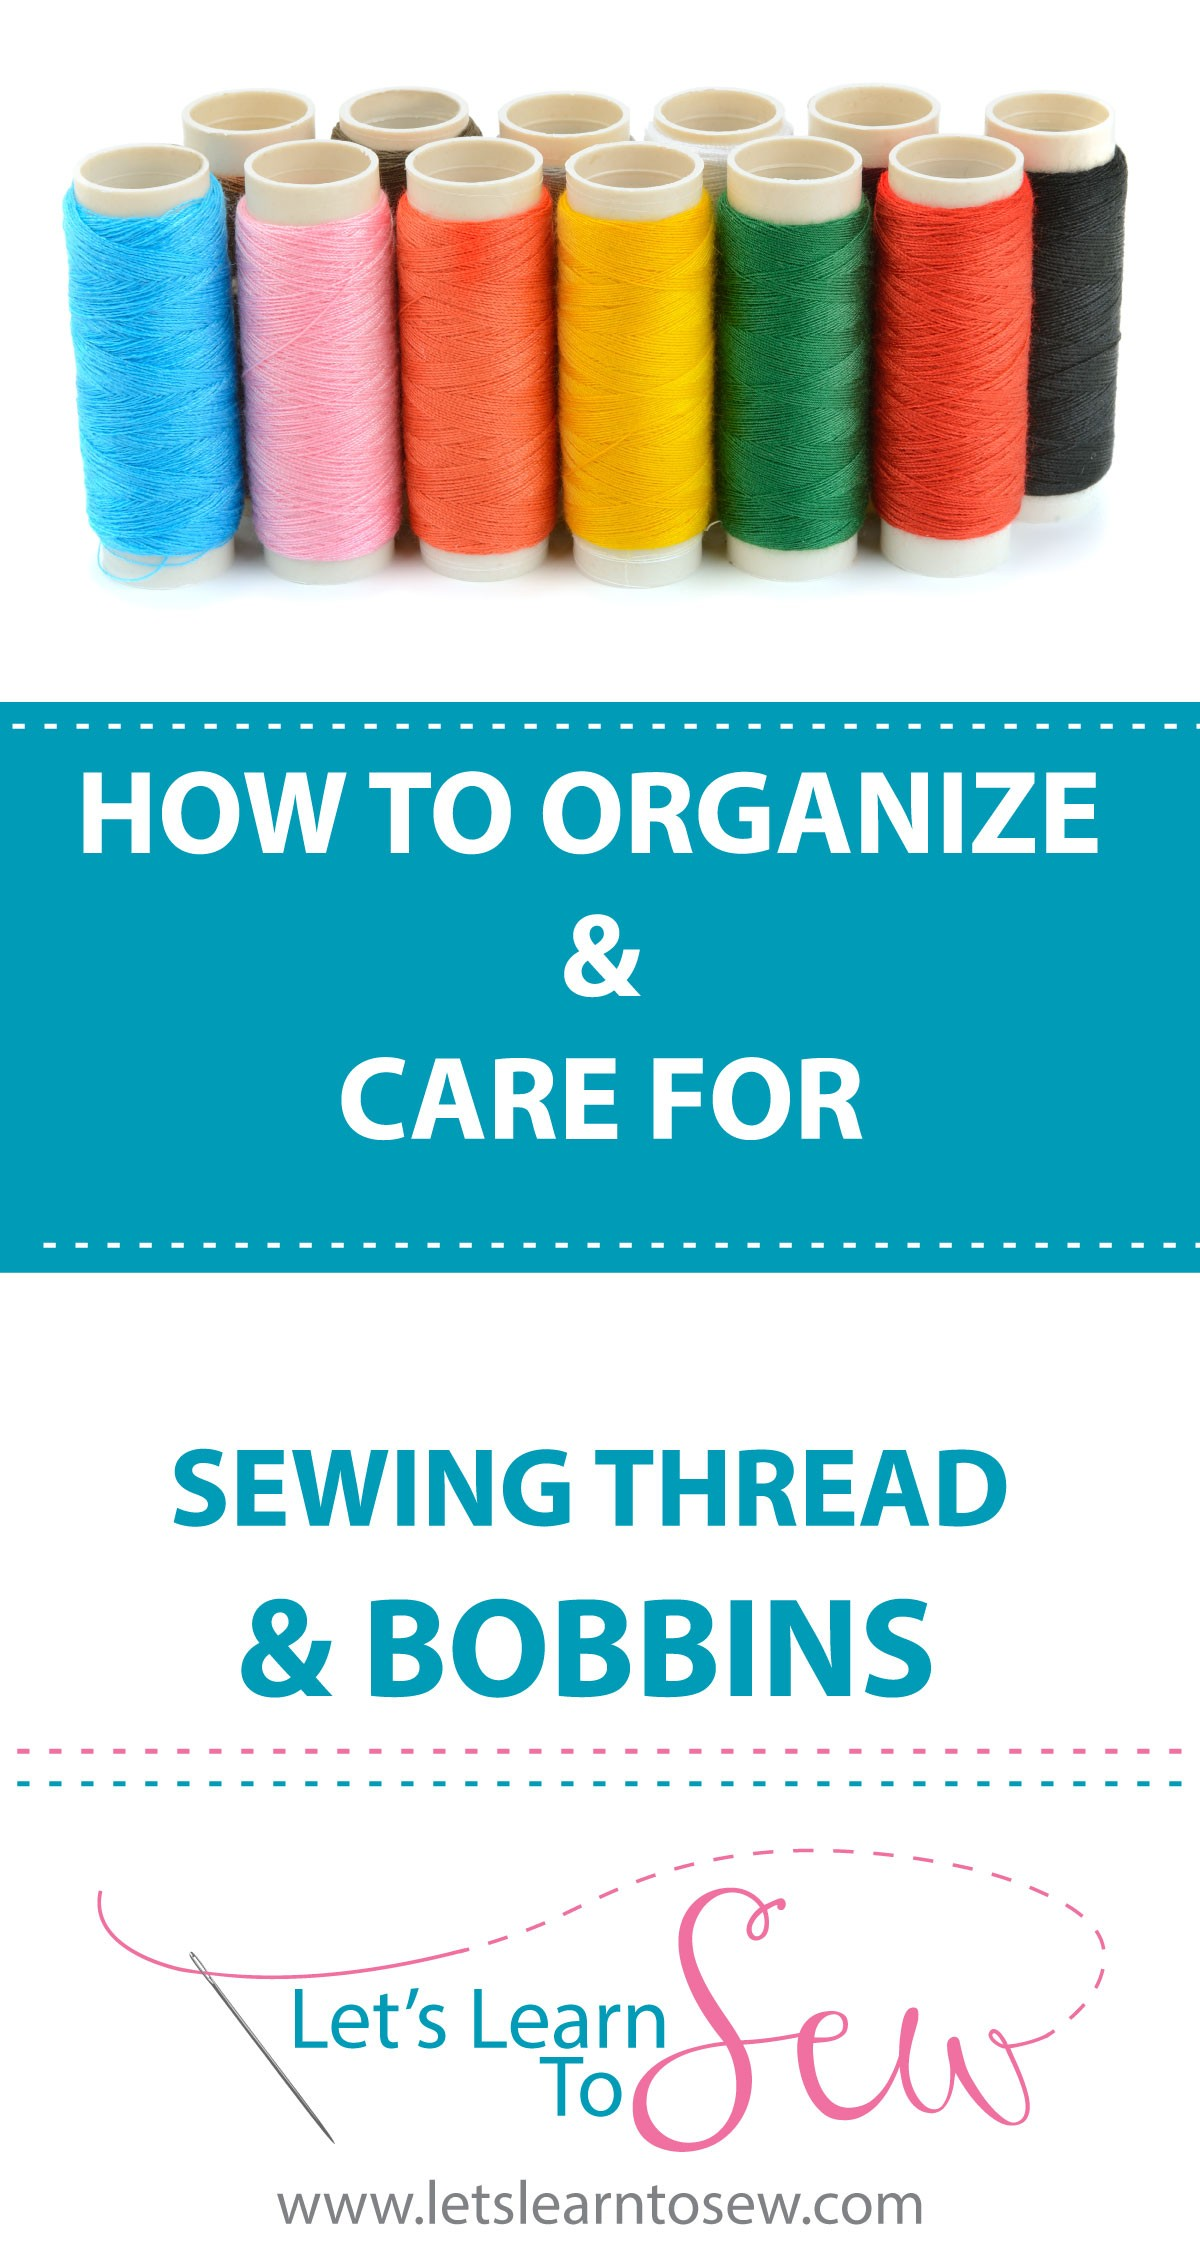 How To Organize and Care For Sewing Thread and Bobbins